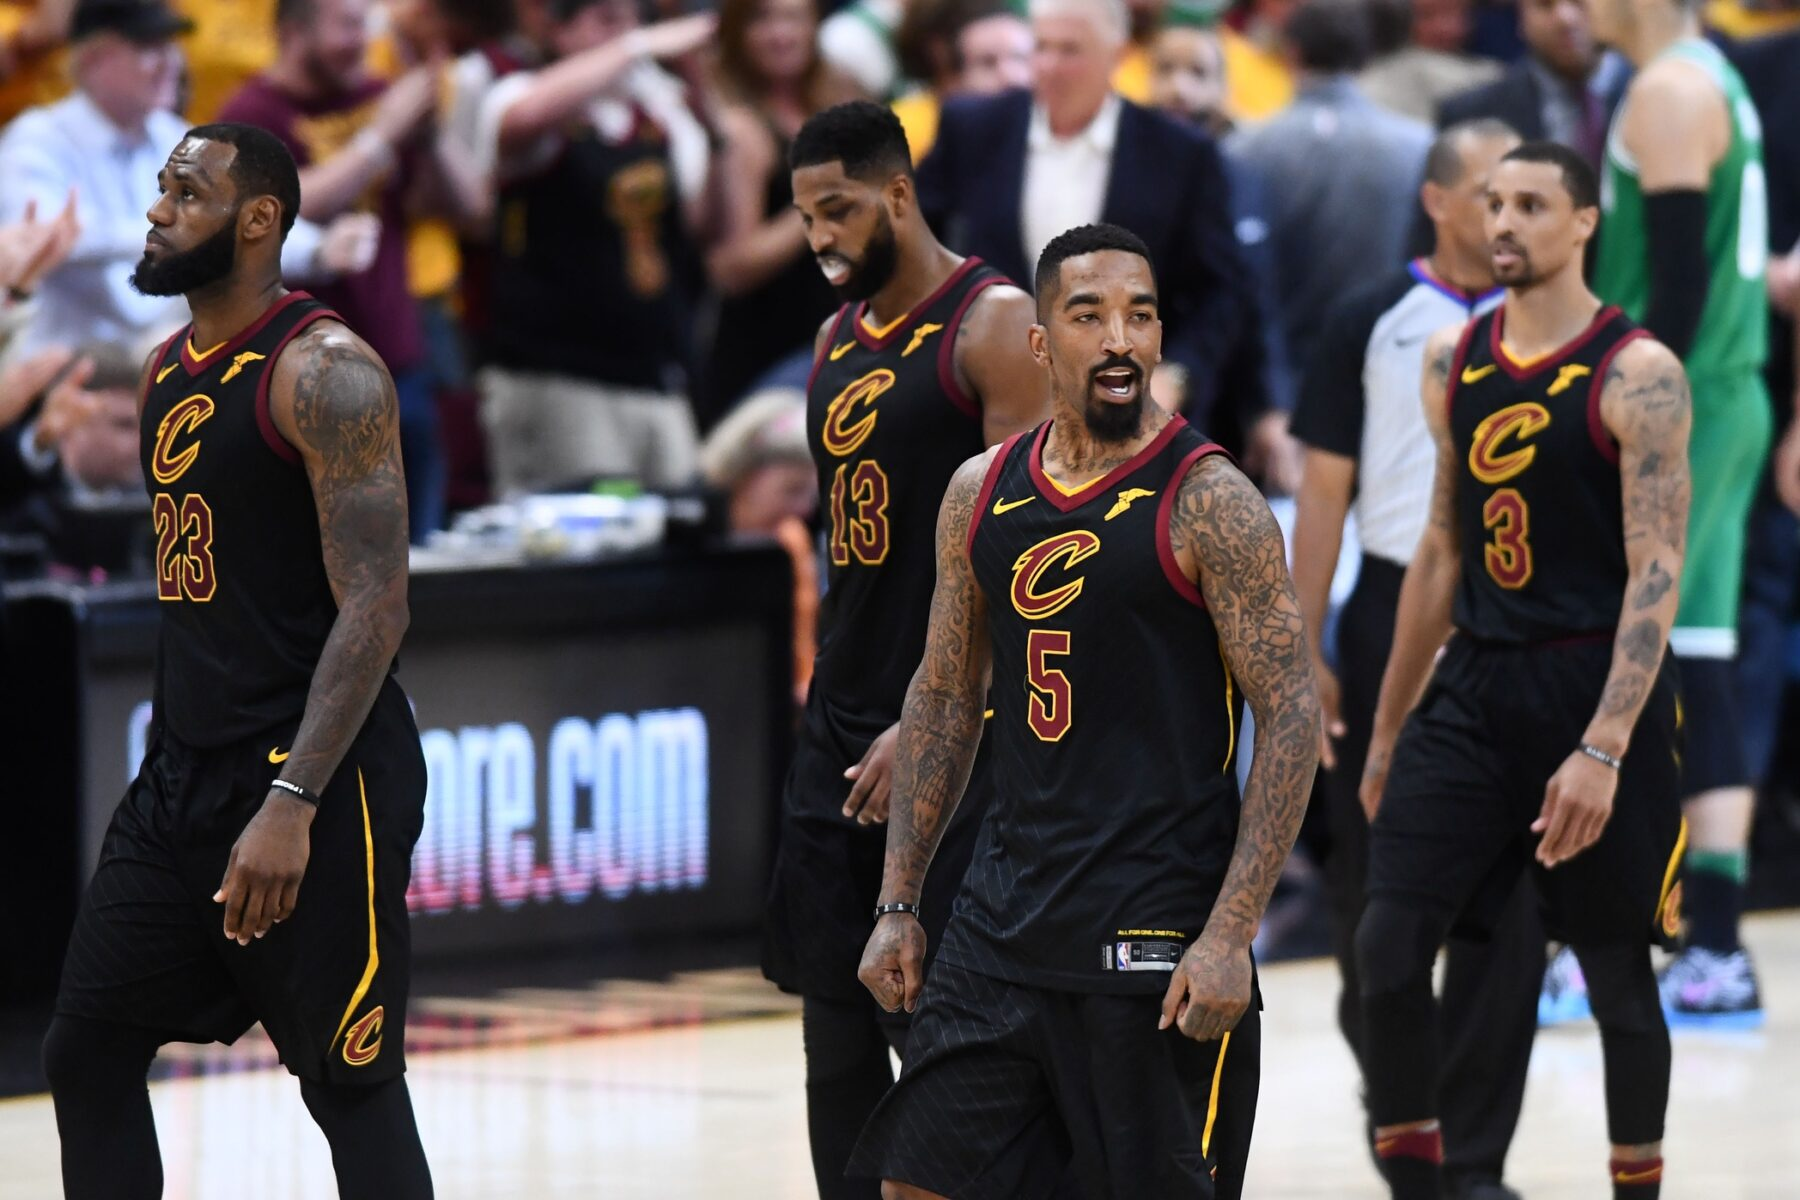 LeBron James and J.R. Smith